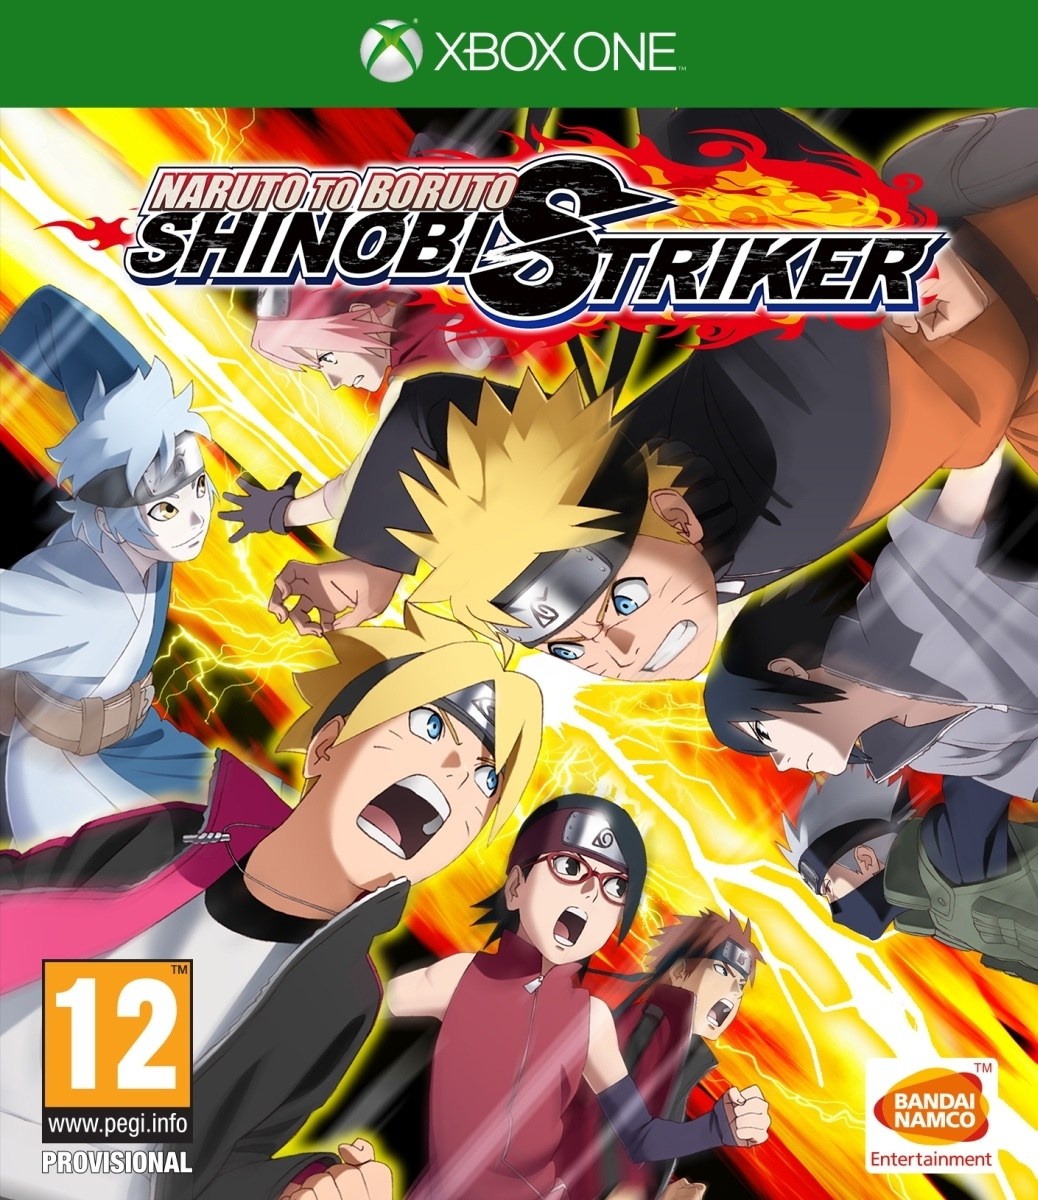 Naruto to Boruto Shinobi Striker PL (Xbox One)